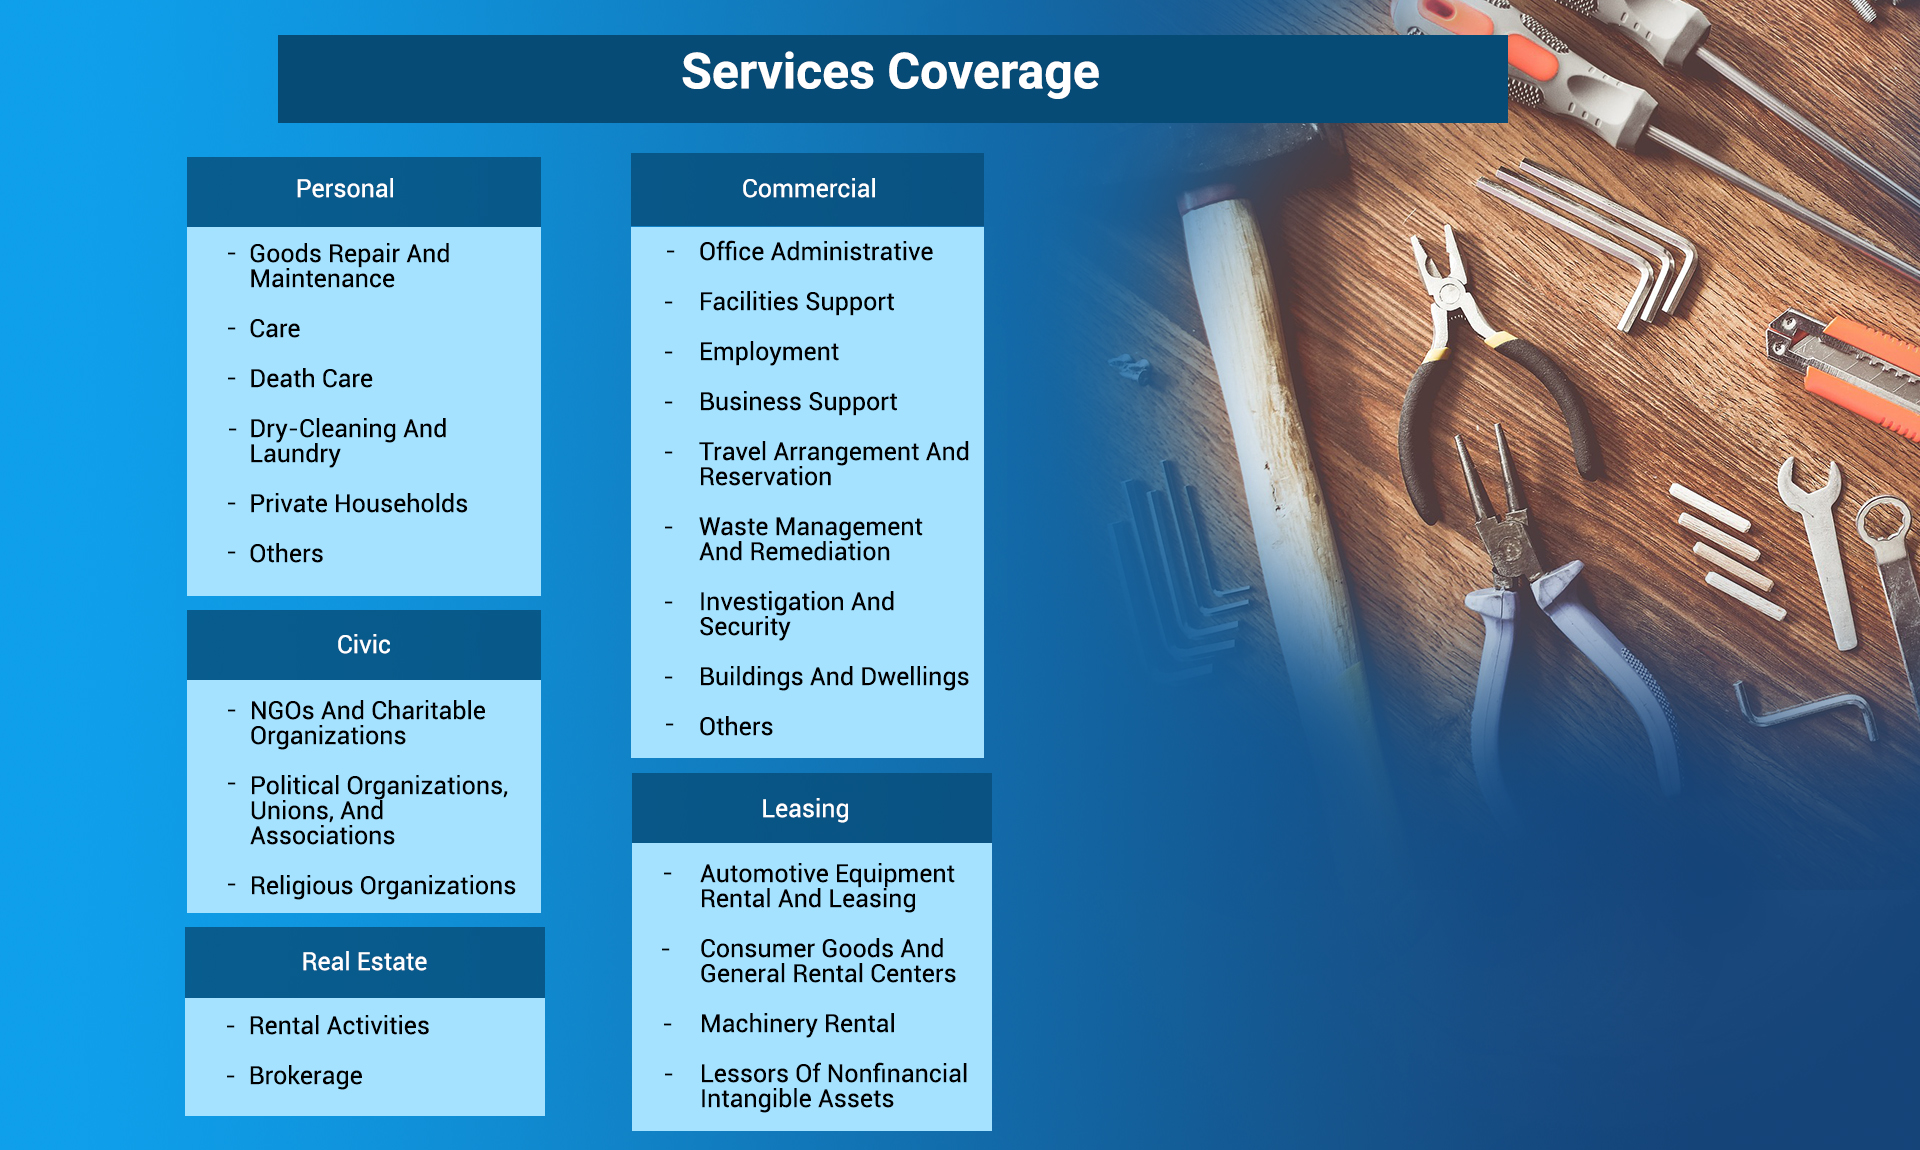 Services Coverage